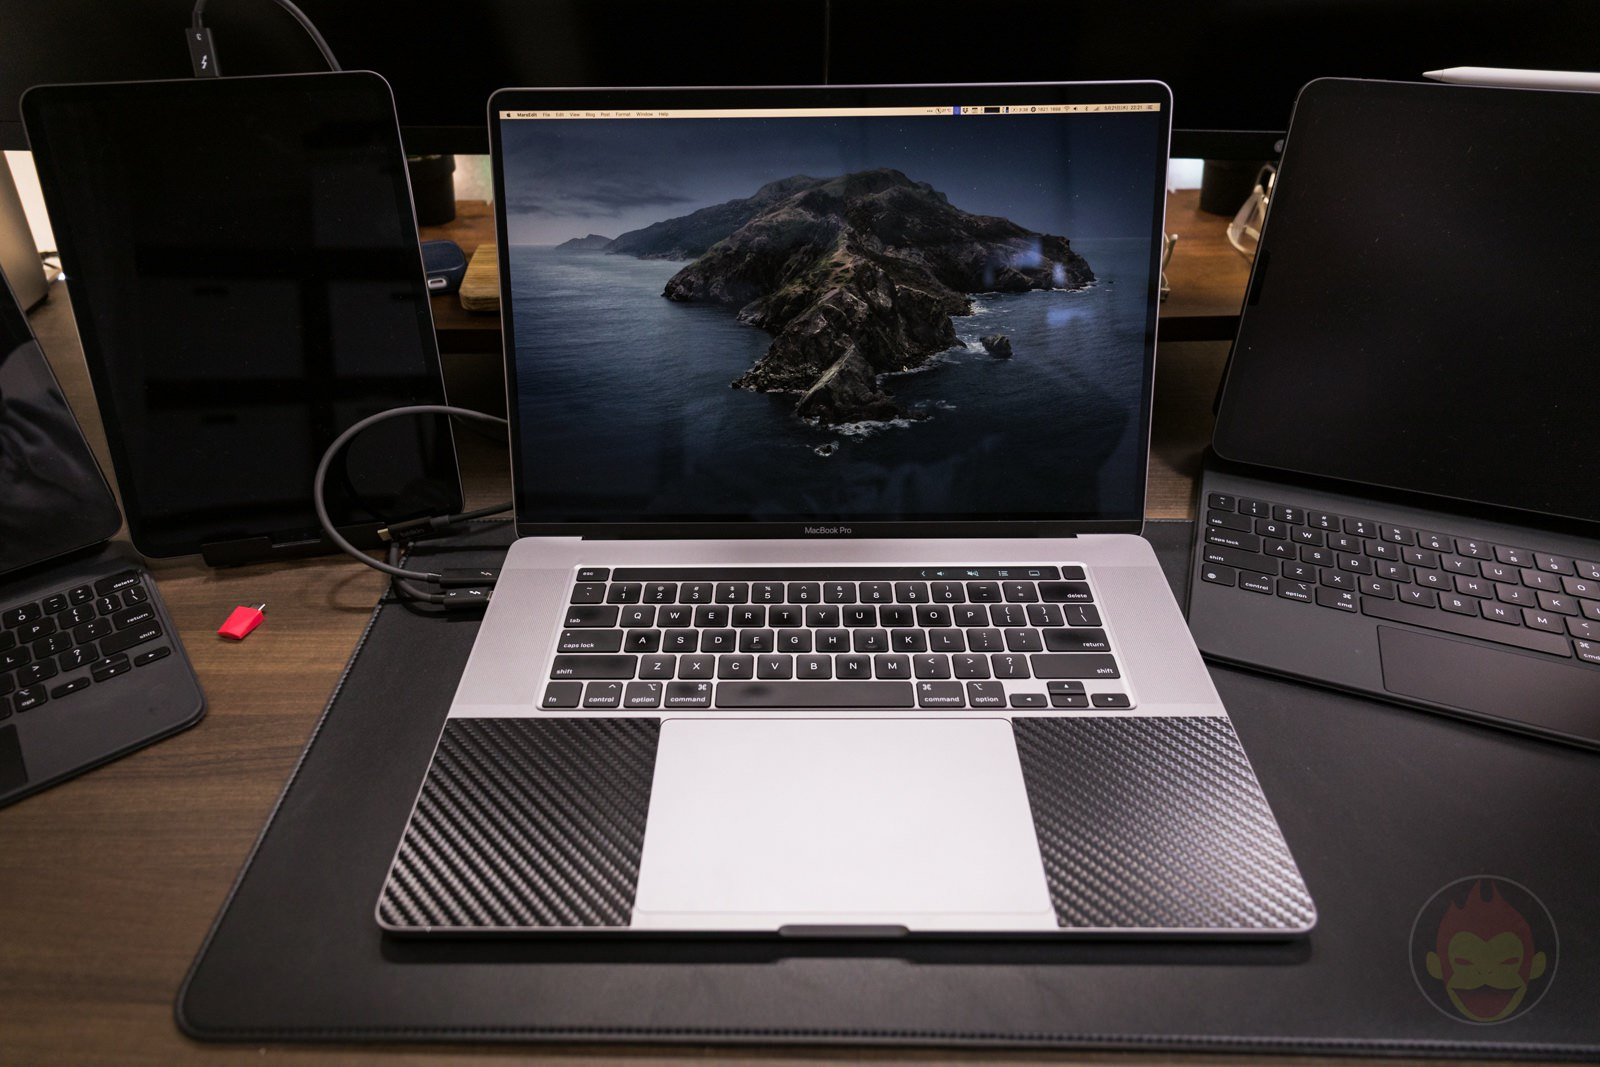 using-ipads-for-multidisplay-support-12.jpg